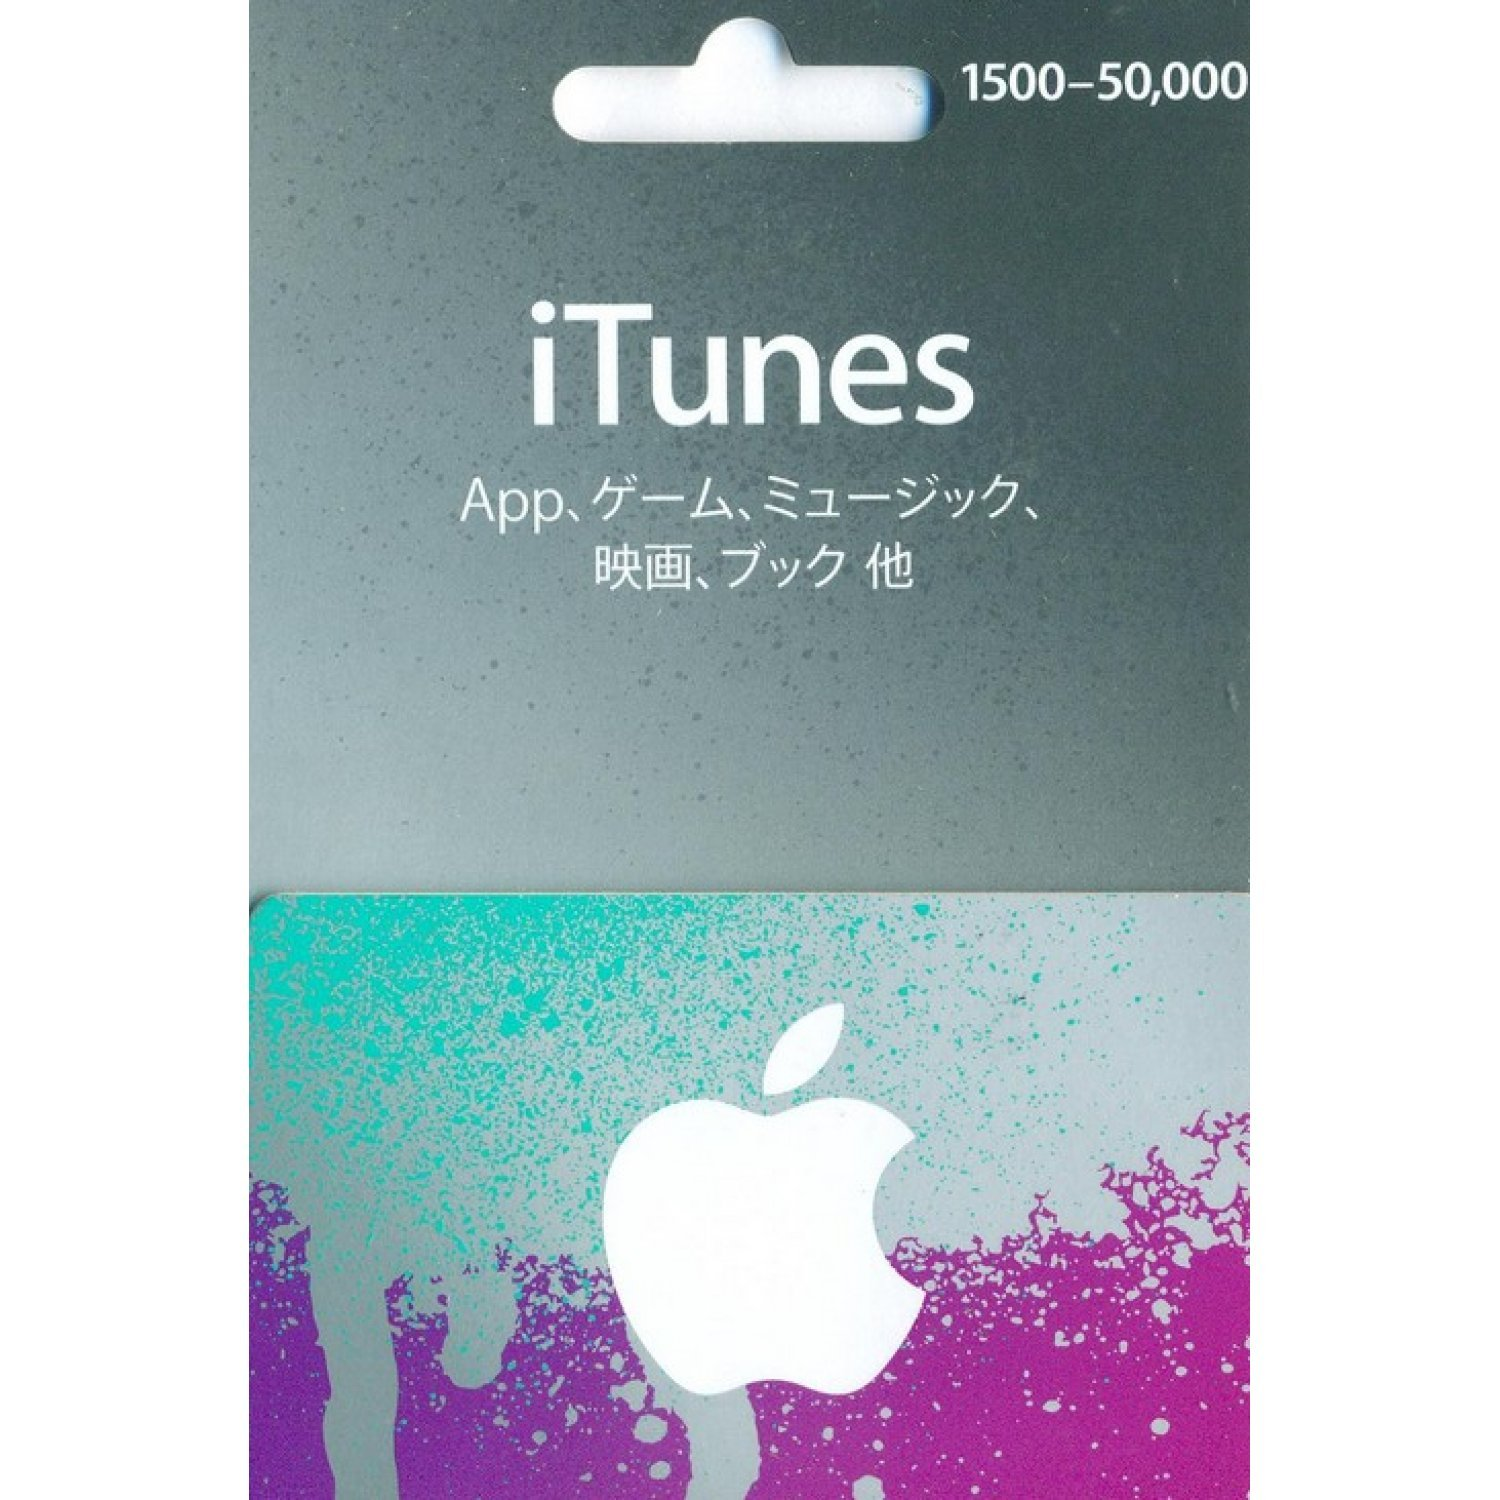 iTunes Card (20000 Yen Card / for Japan accounts only)